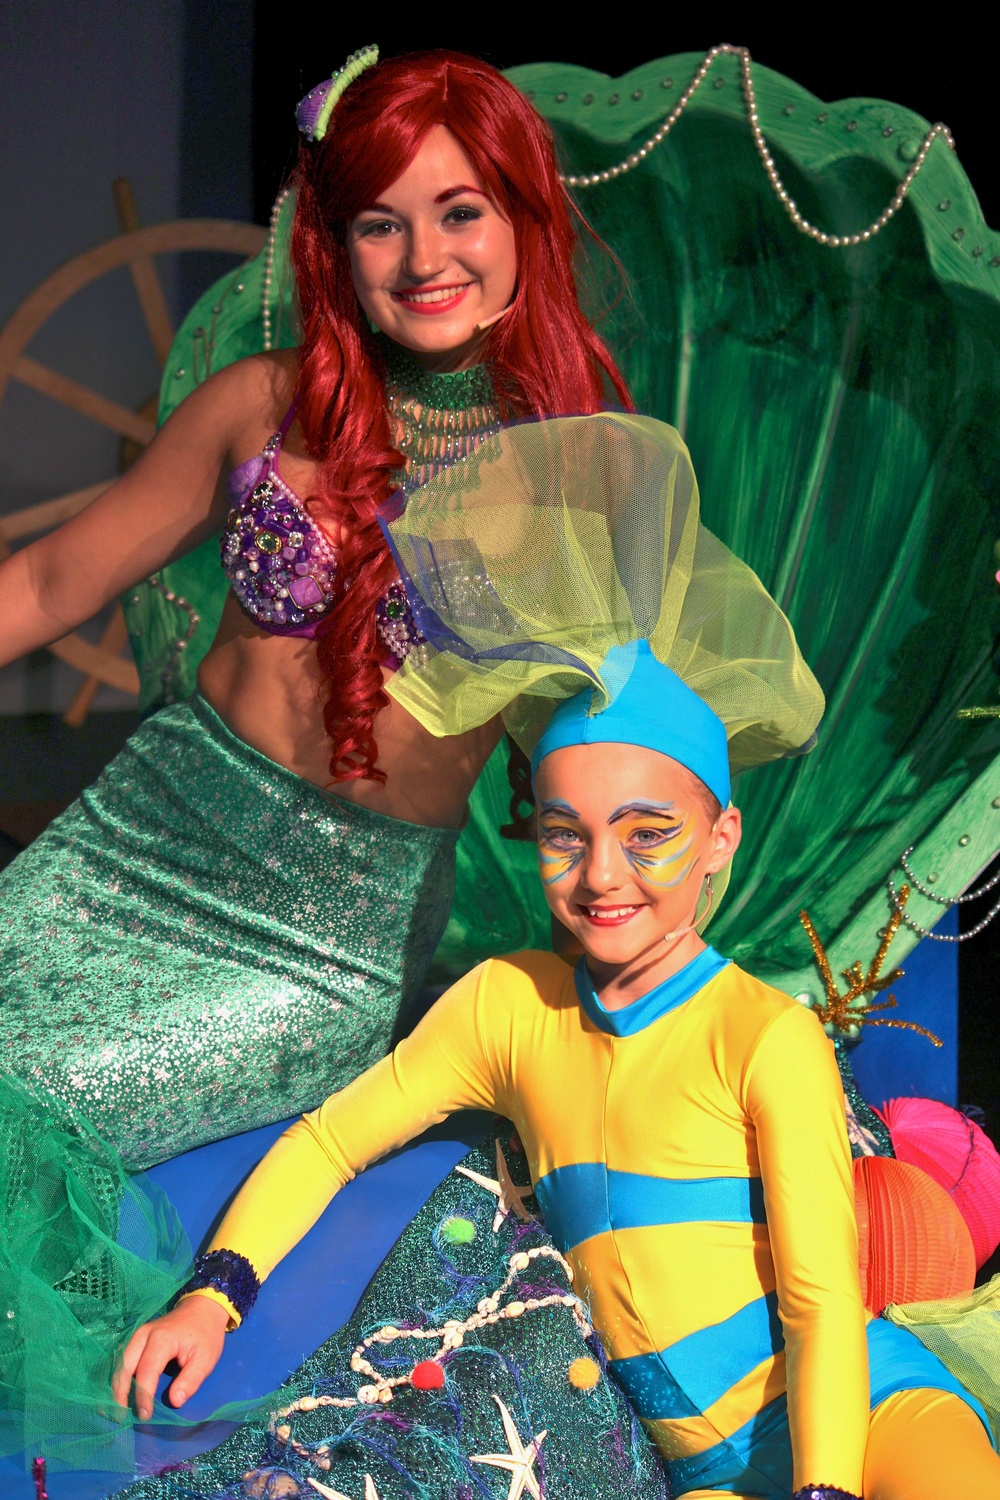 The Little Mermaid, 2013